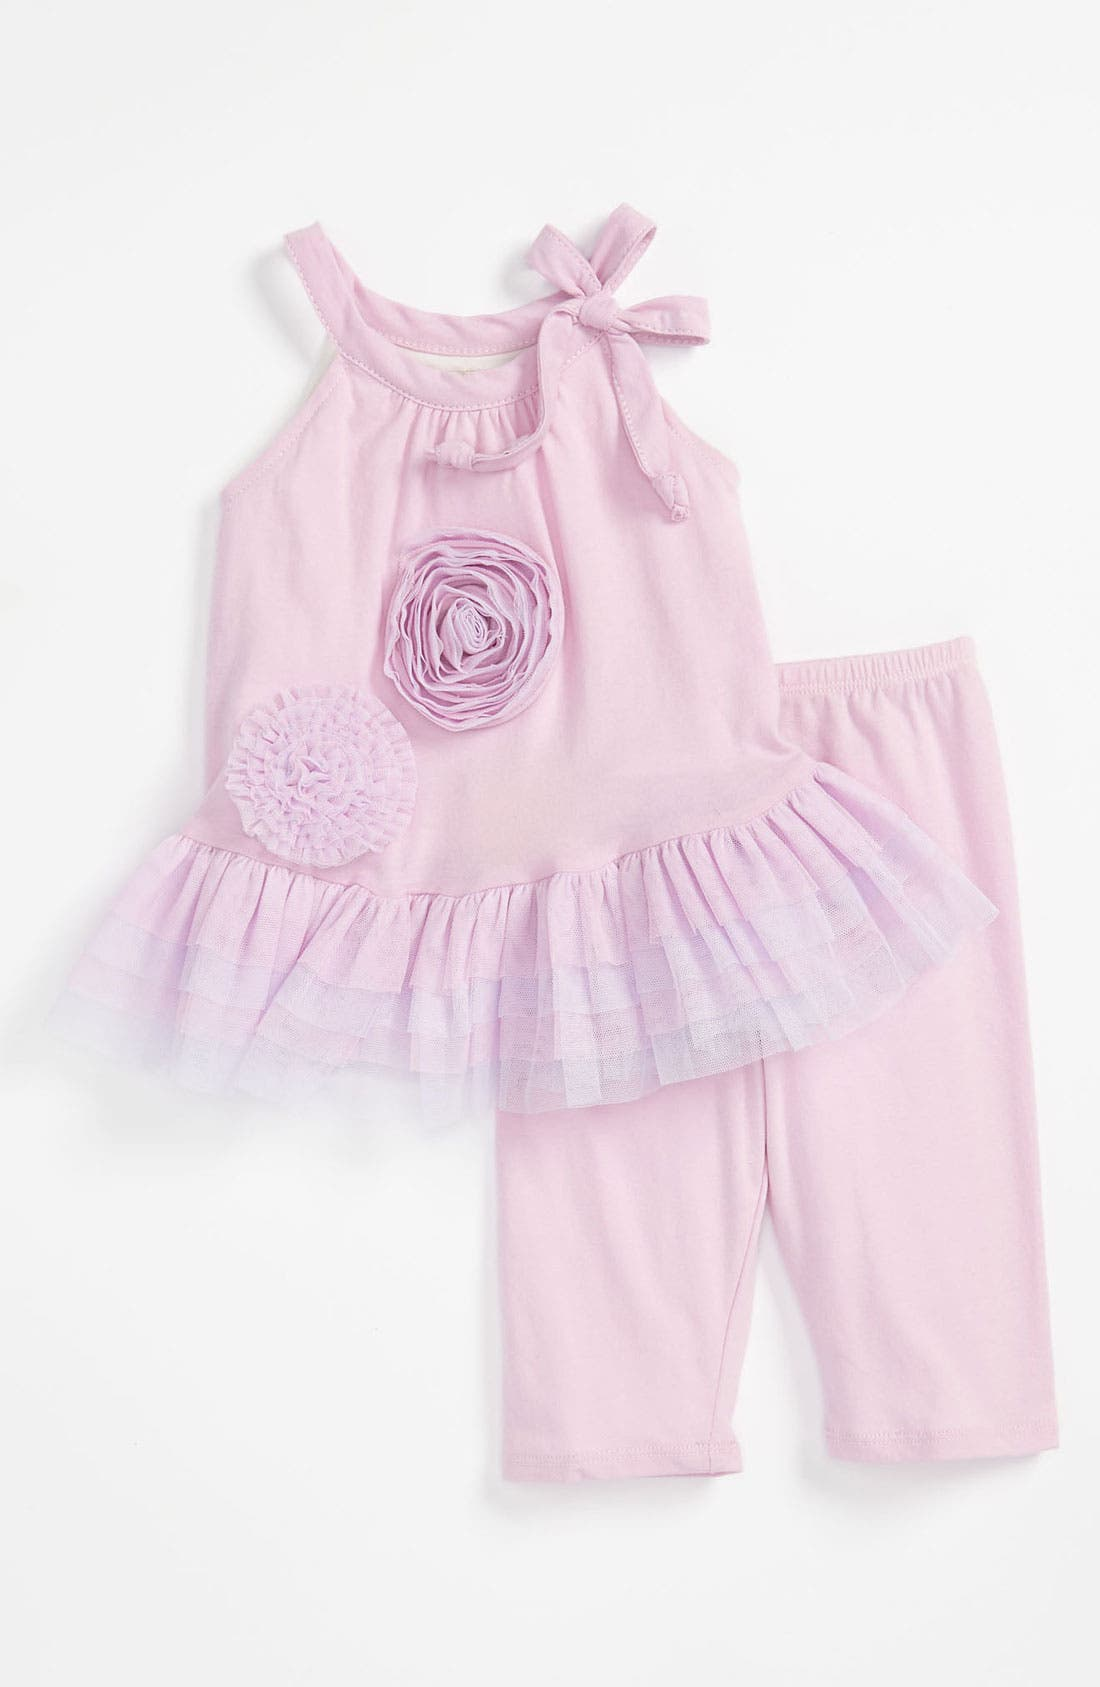 Main Image - Isobella & Chloe 'Ballerina' Top & Leggings (Infant)